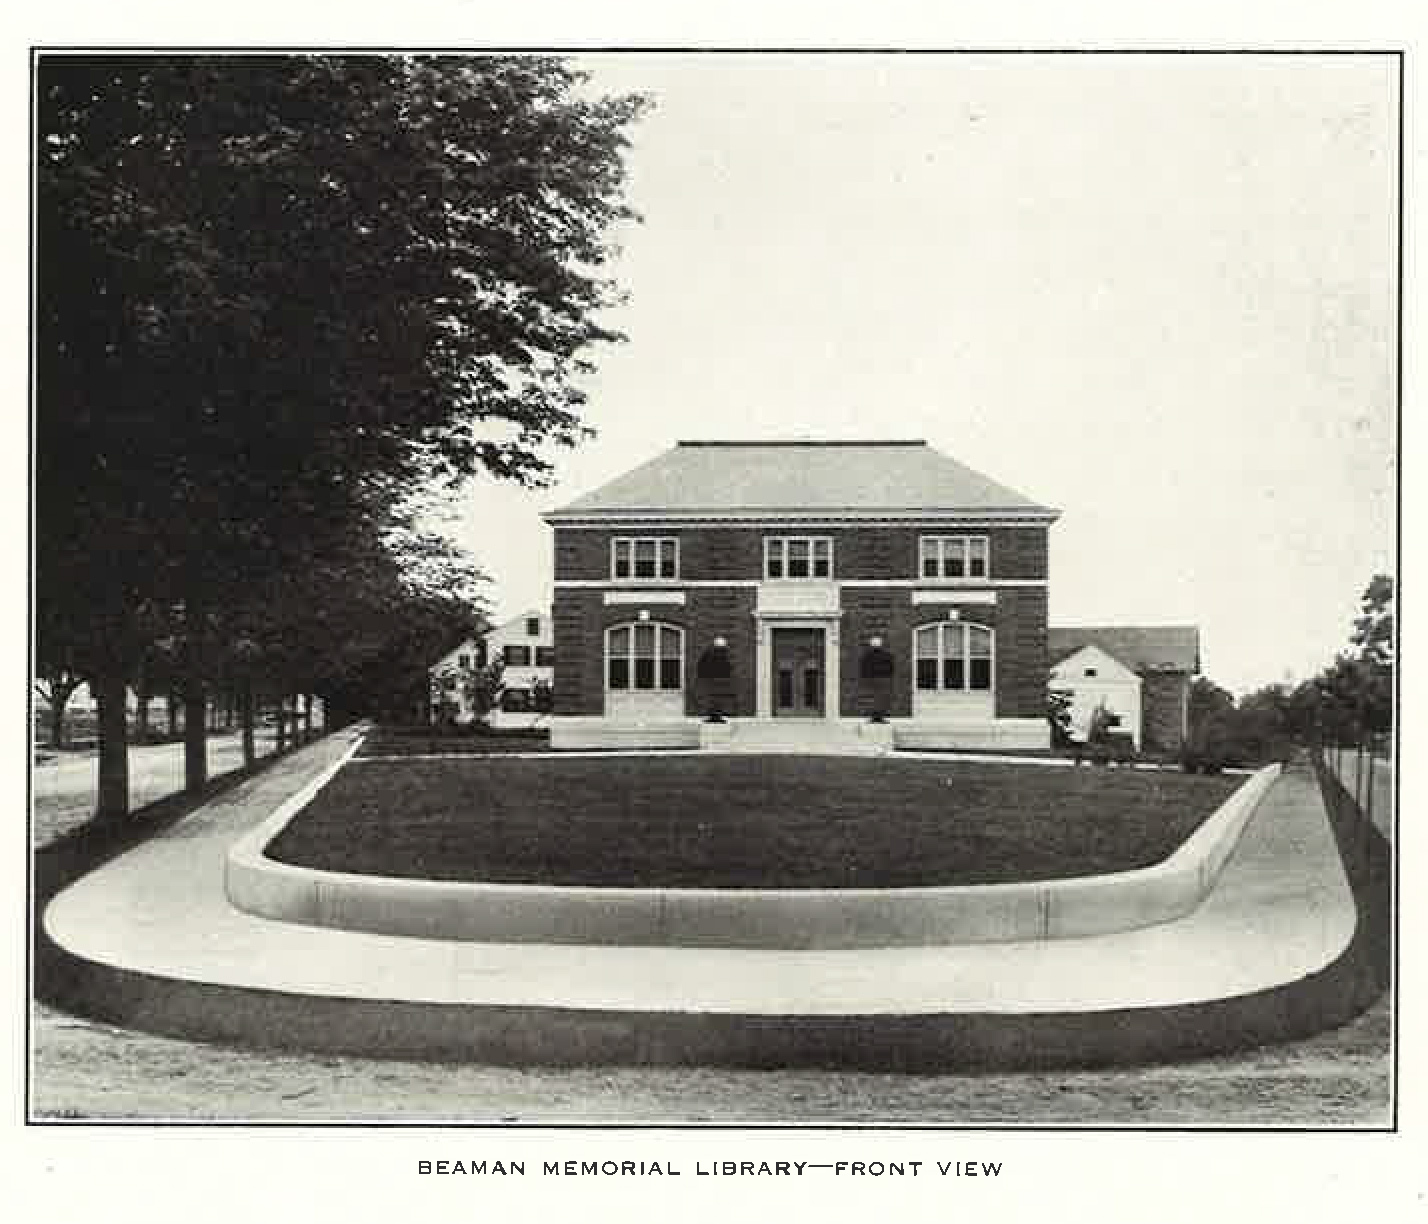 Image of Beaman Library from 1912